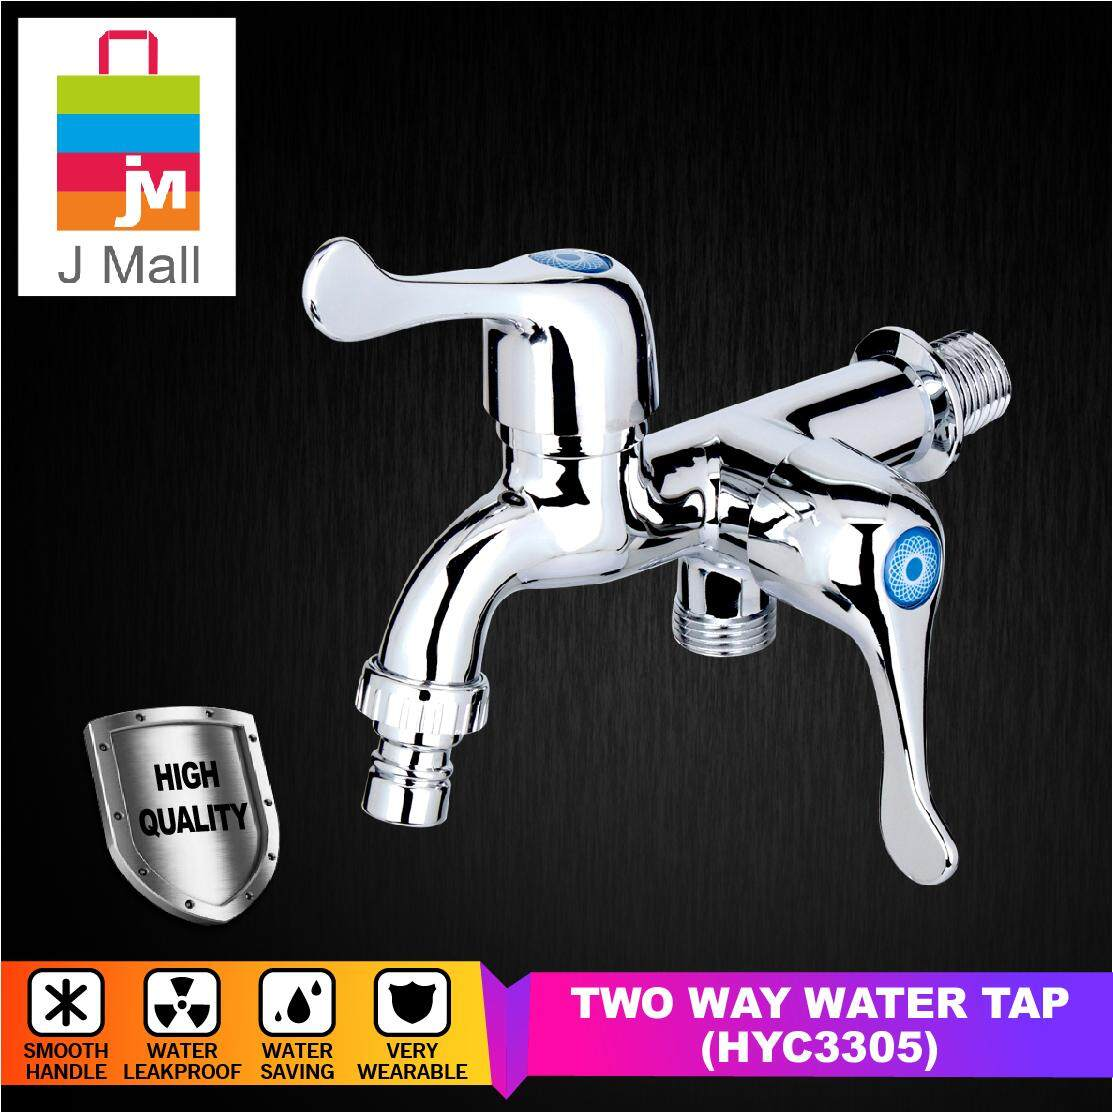 JMALL Wall Bathroom Faucet TWO WAY WATER TAP (HYC3305)